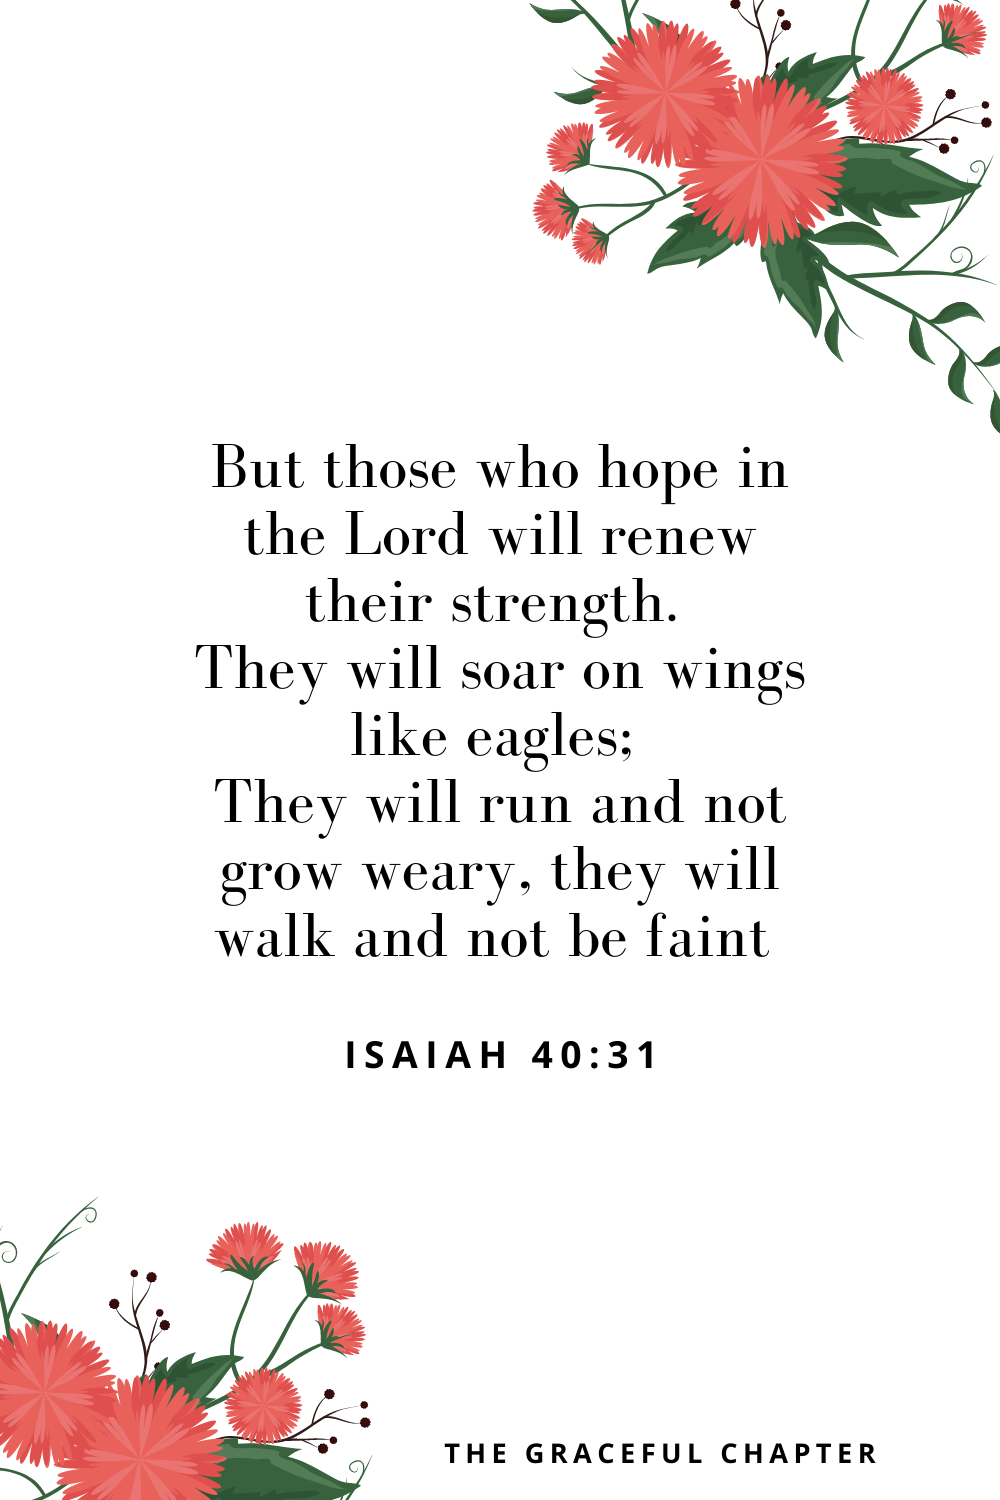 But those who hope in the Lord will renew their strength. They will soar on wings like eagles; they will run and not grow weary, they will walk and not be faint Isaiah 40:31